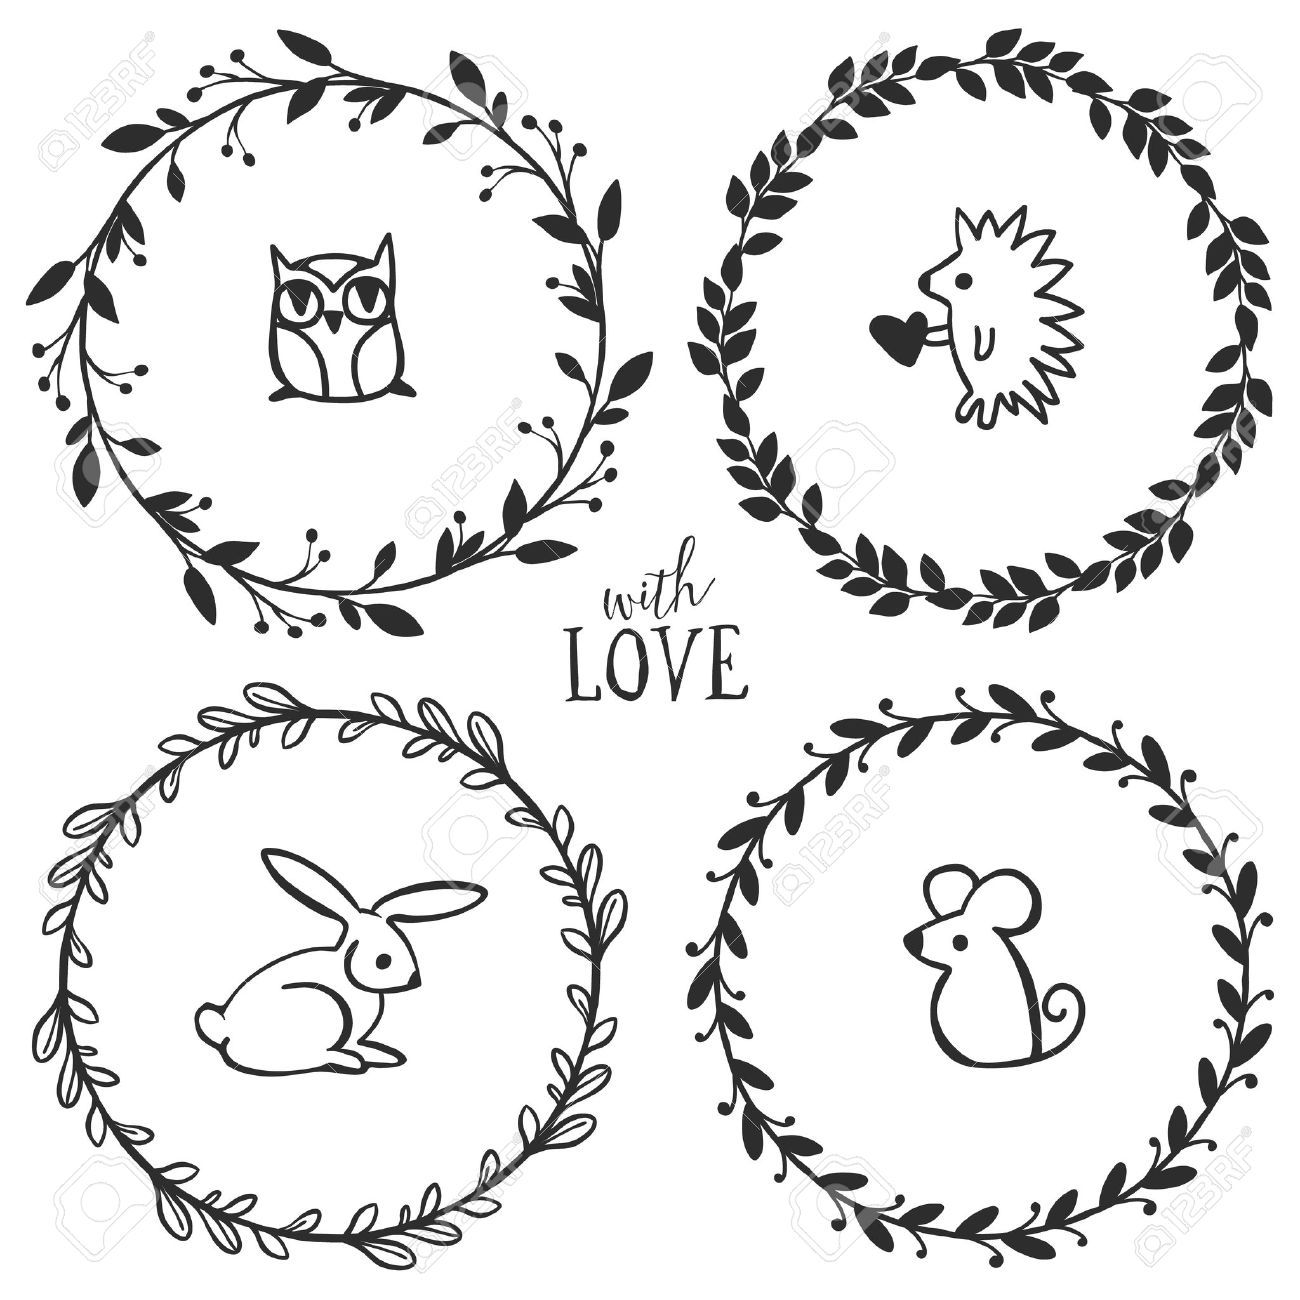 hand drawn rustic vintage wreaths with lettering and cute little